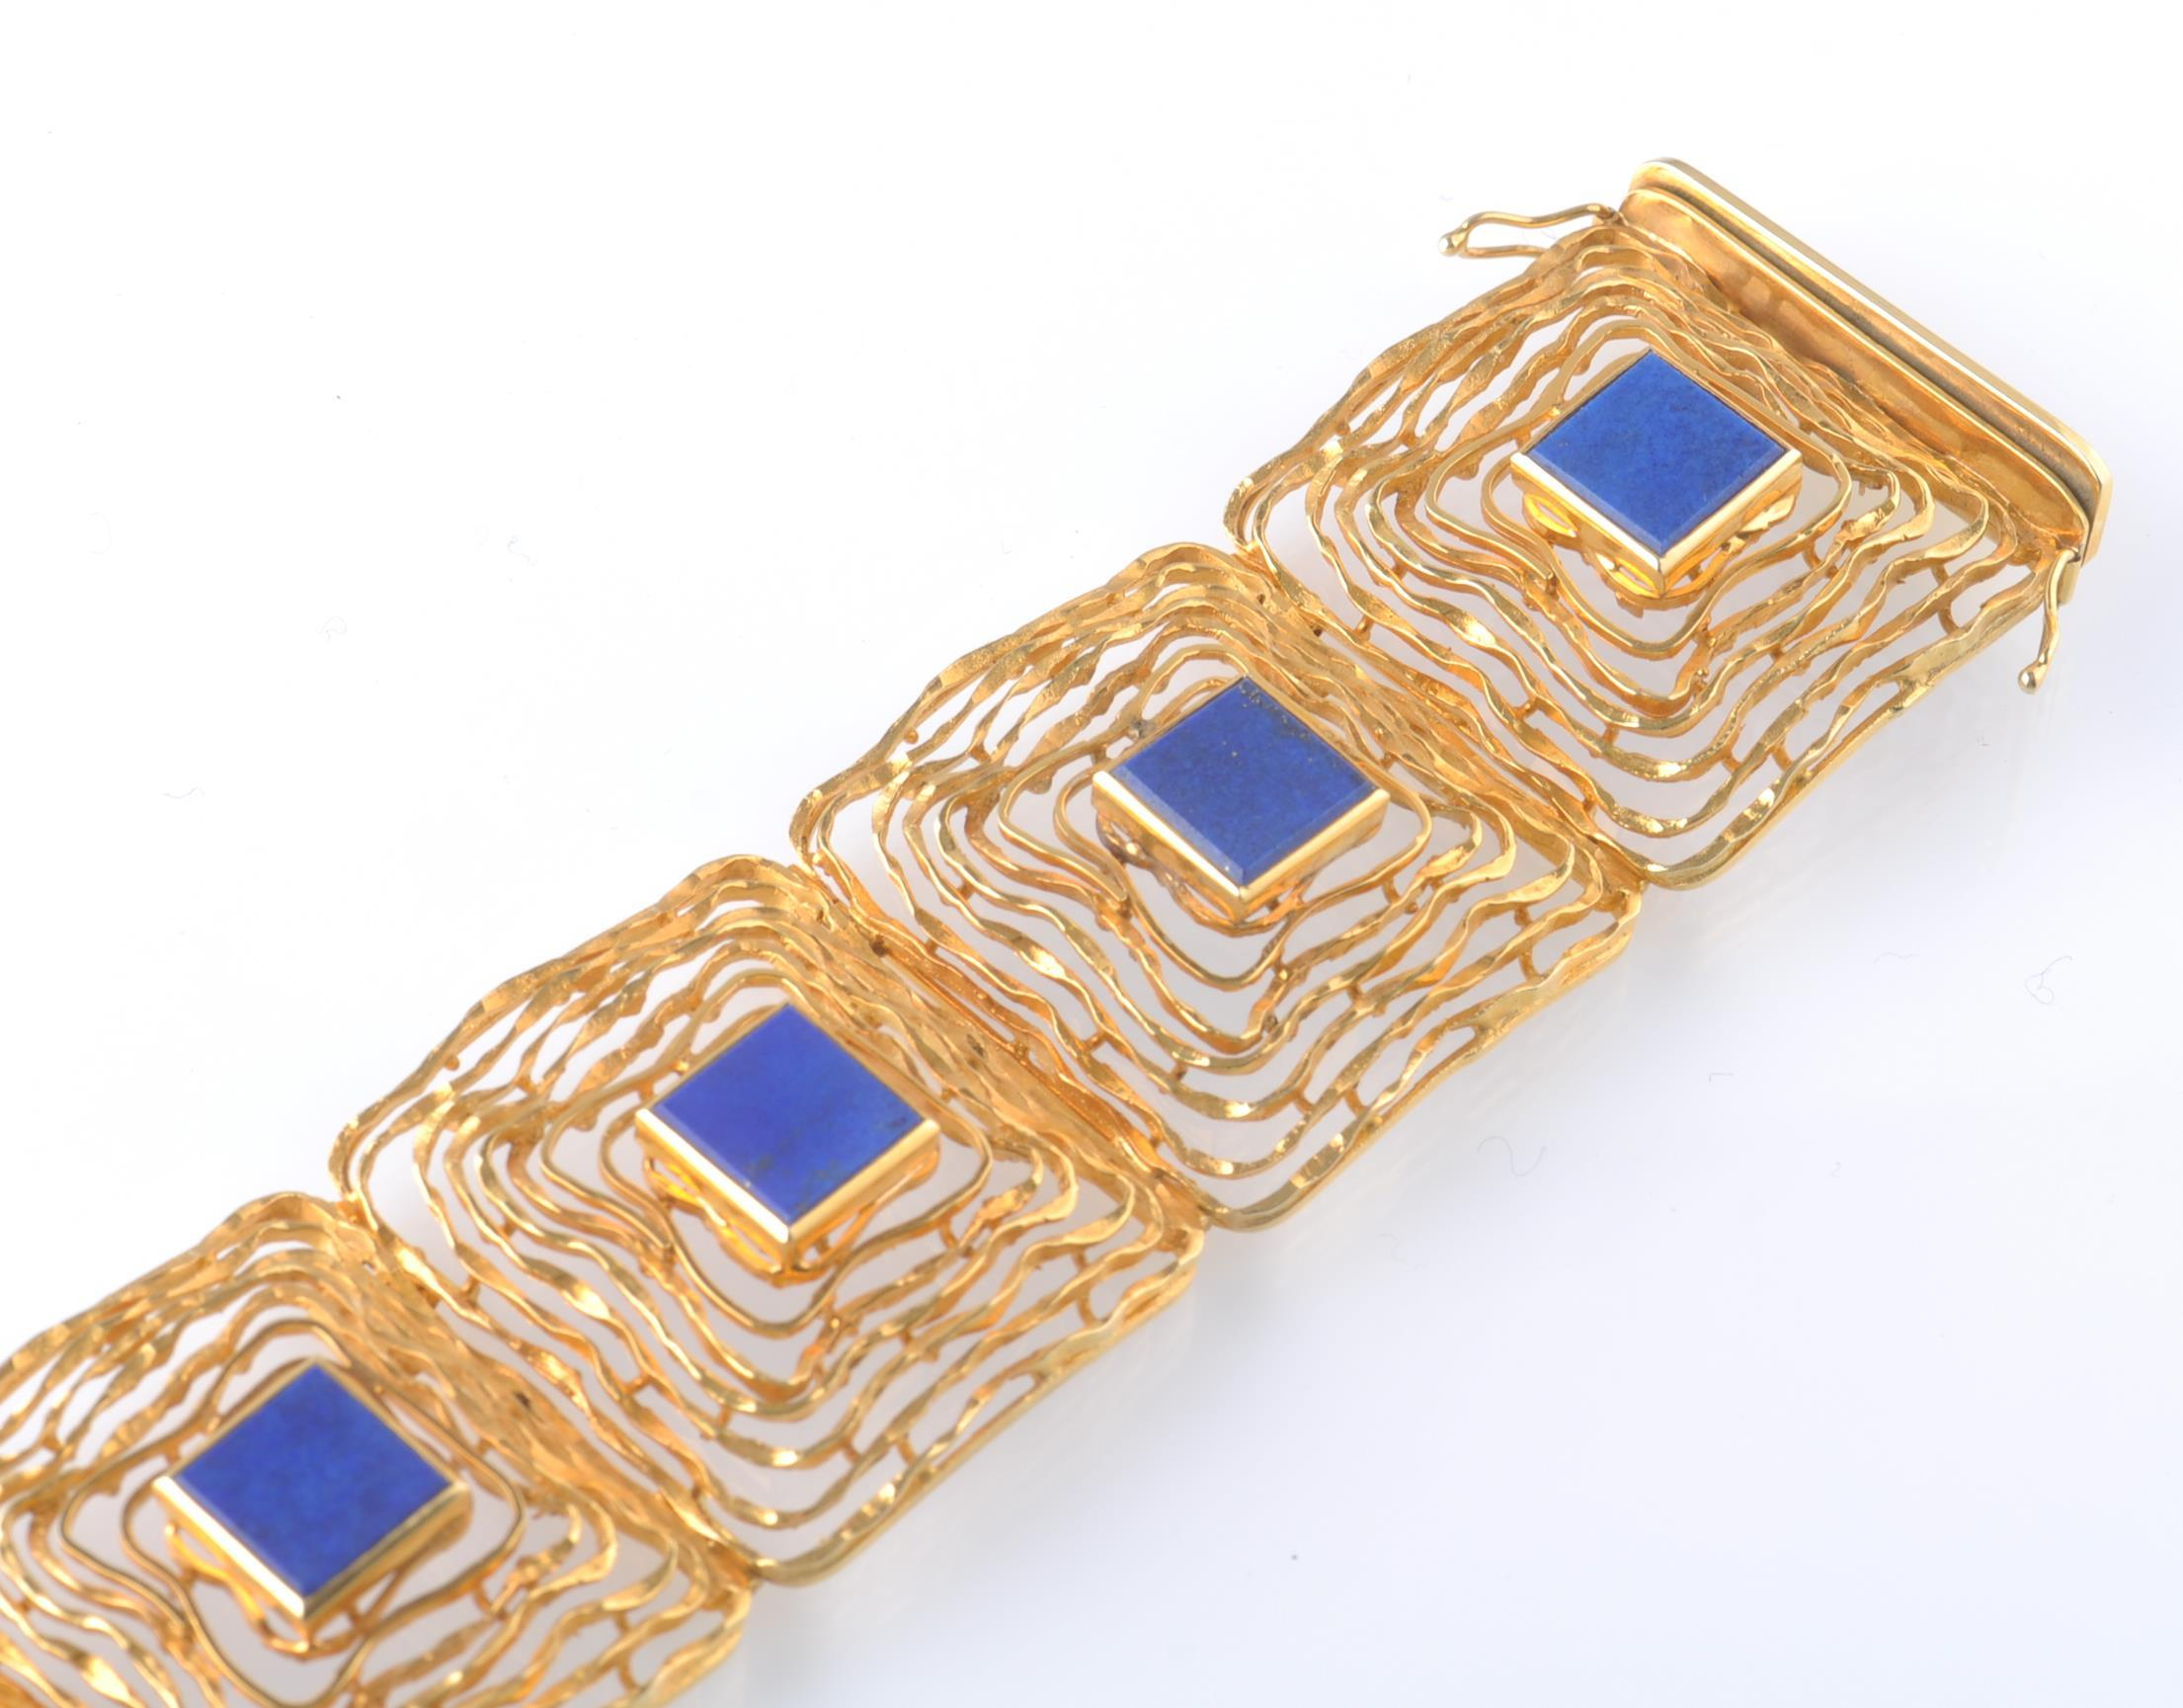 A MID CENTURY 14CT GOLD AND LAPIS LAZULI BRACELET - Image 3 of 6